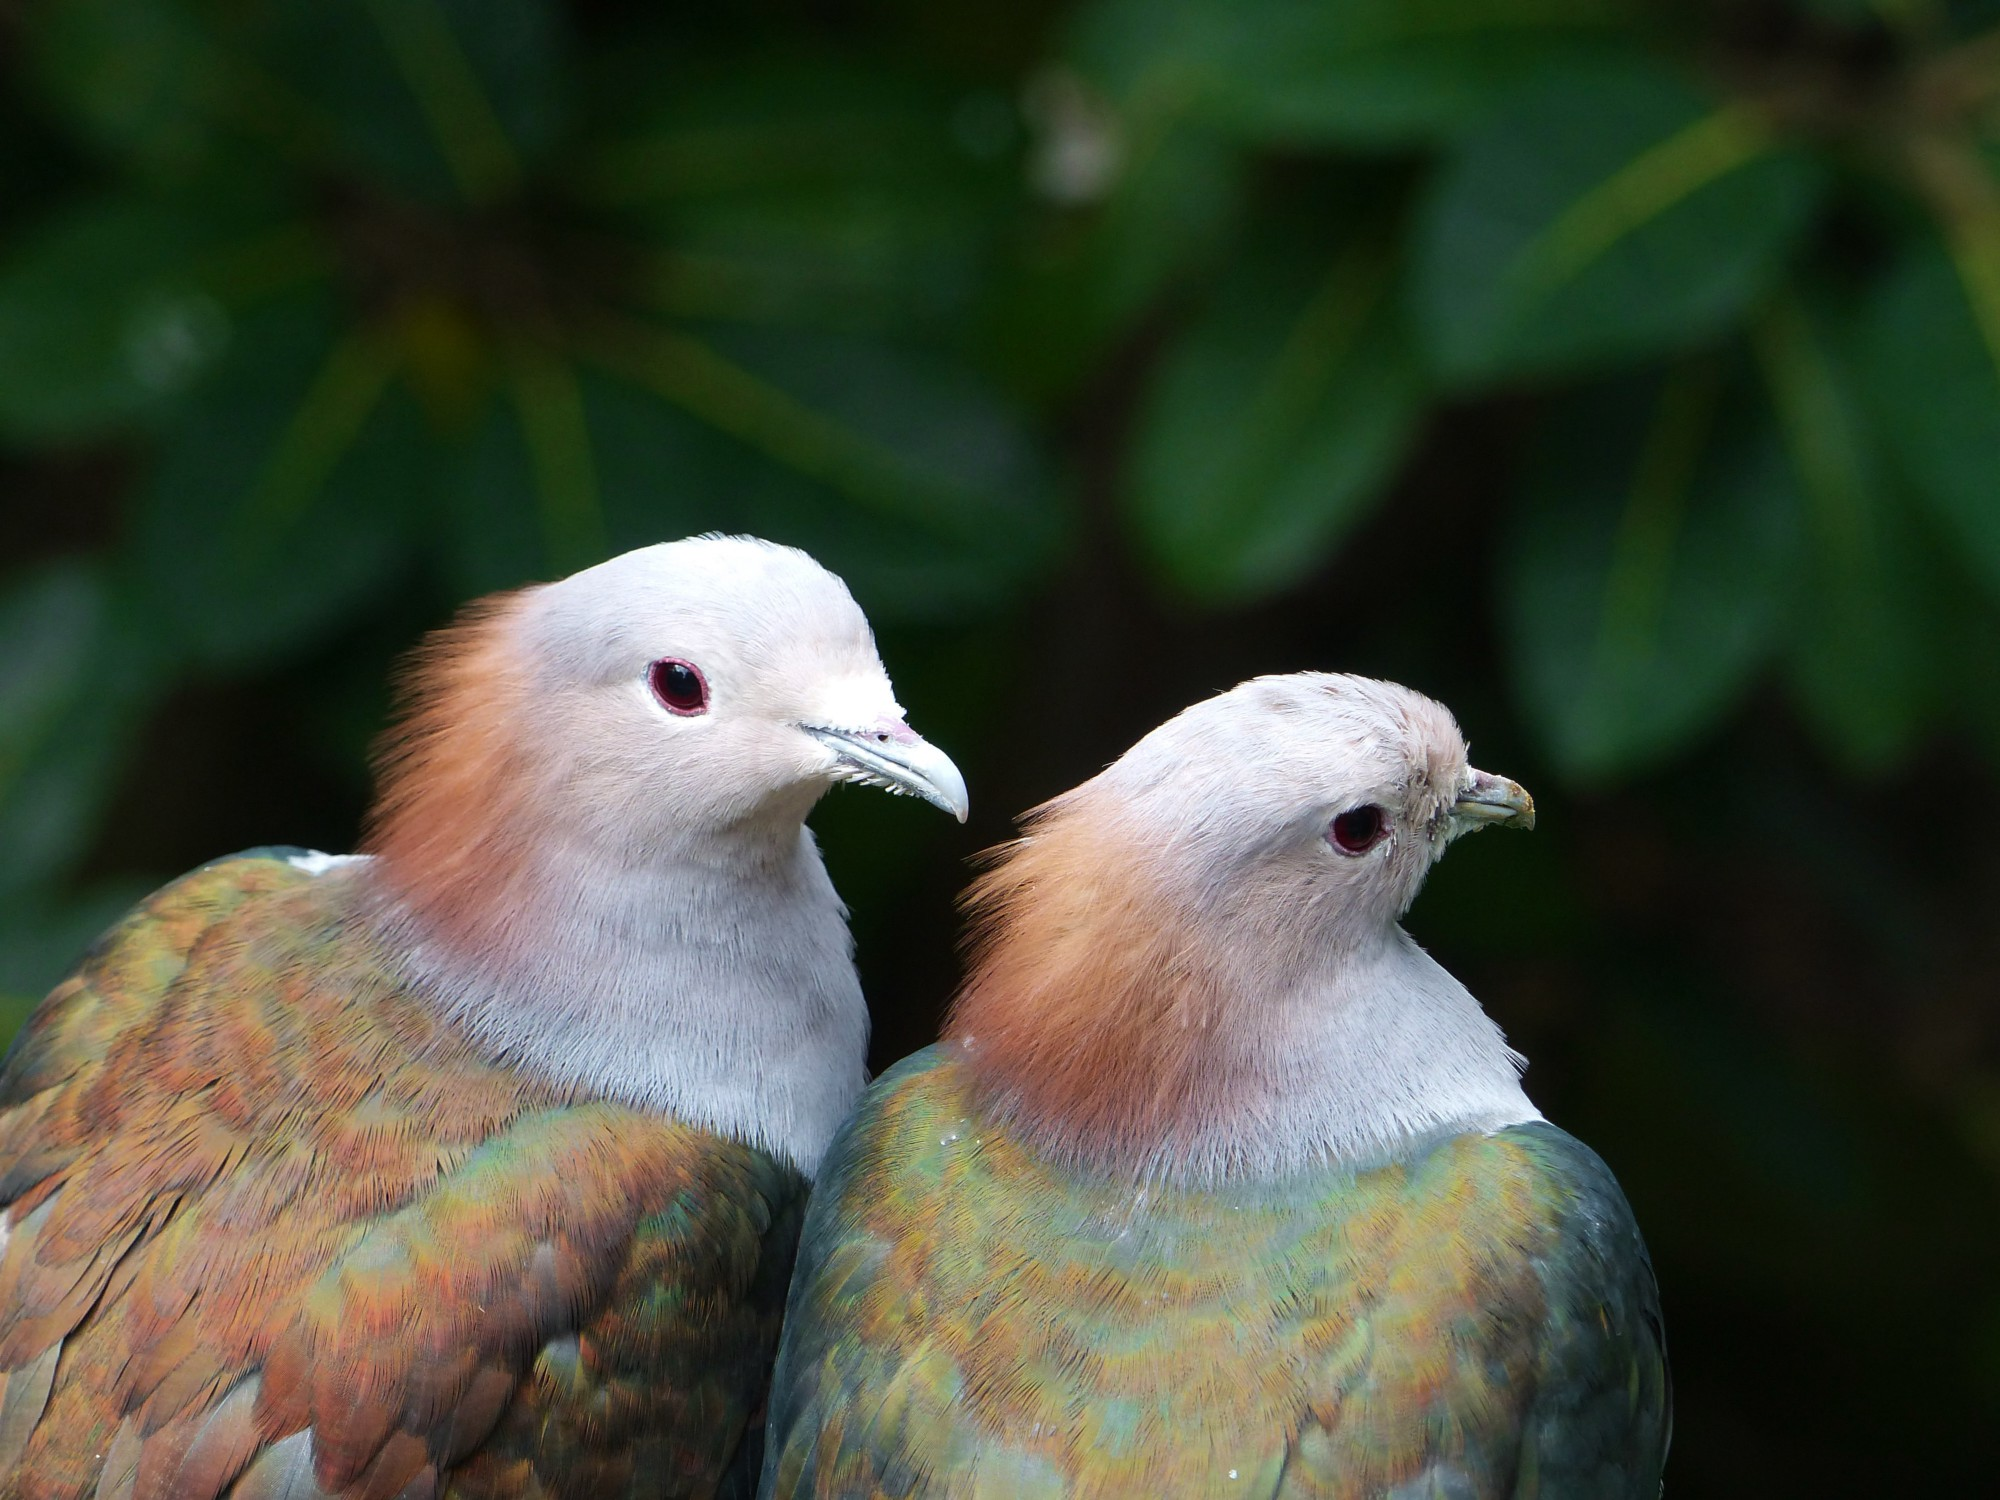 Two exotic birds in foliage.